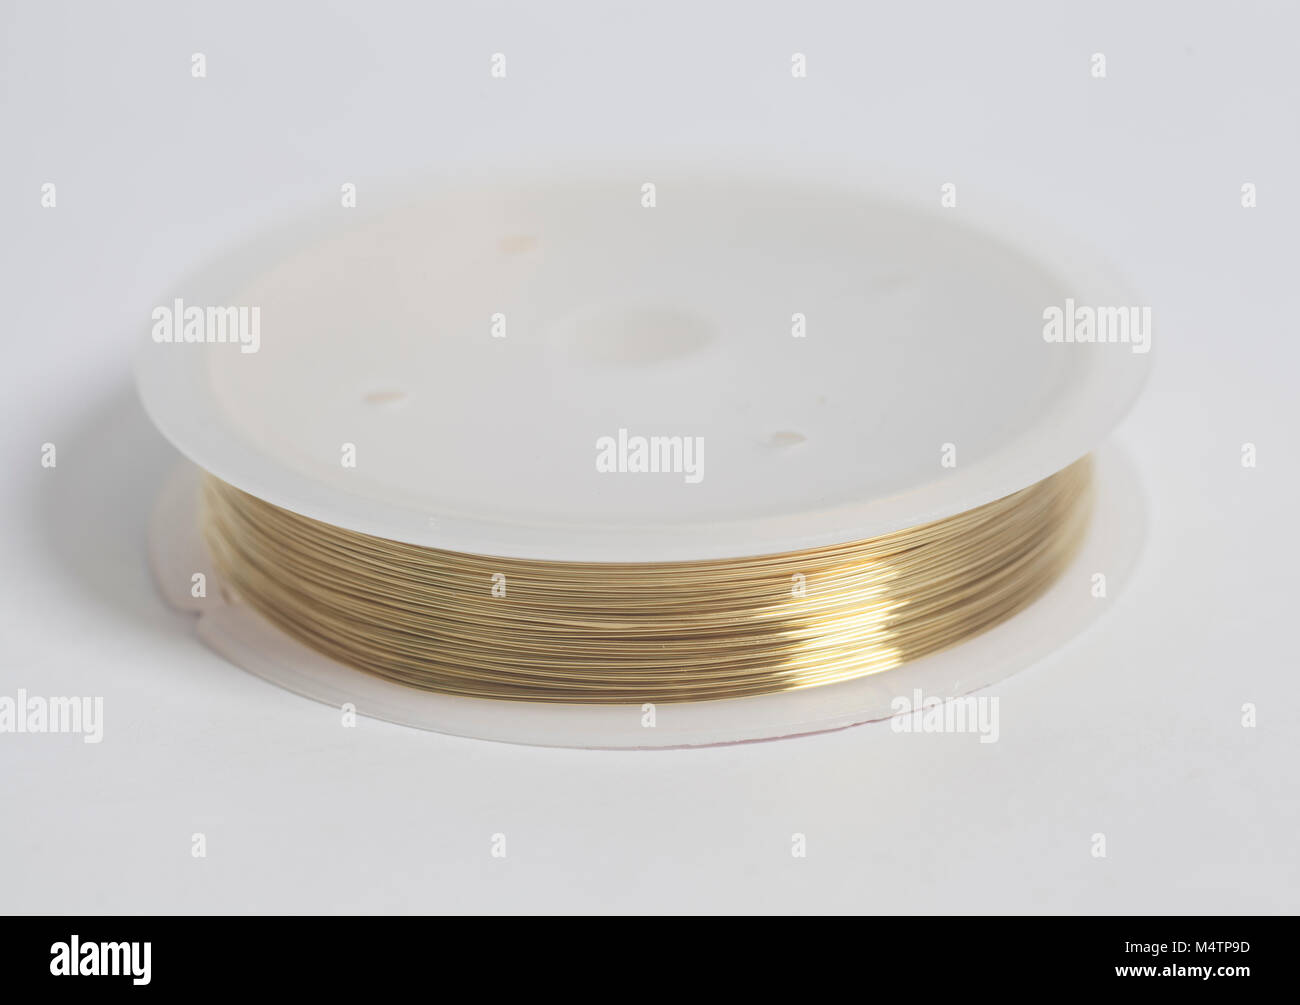 Copper wire on spool on white background Stock Photo: 175106665 - Alamy